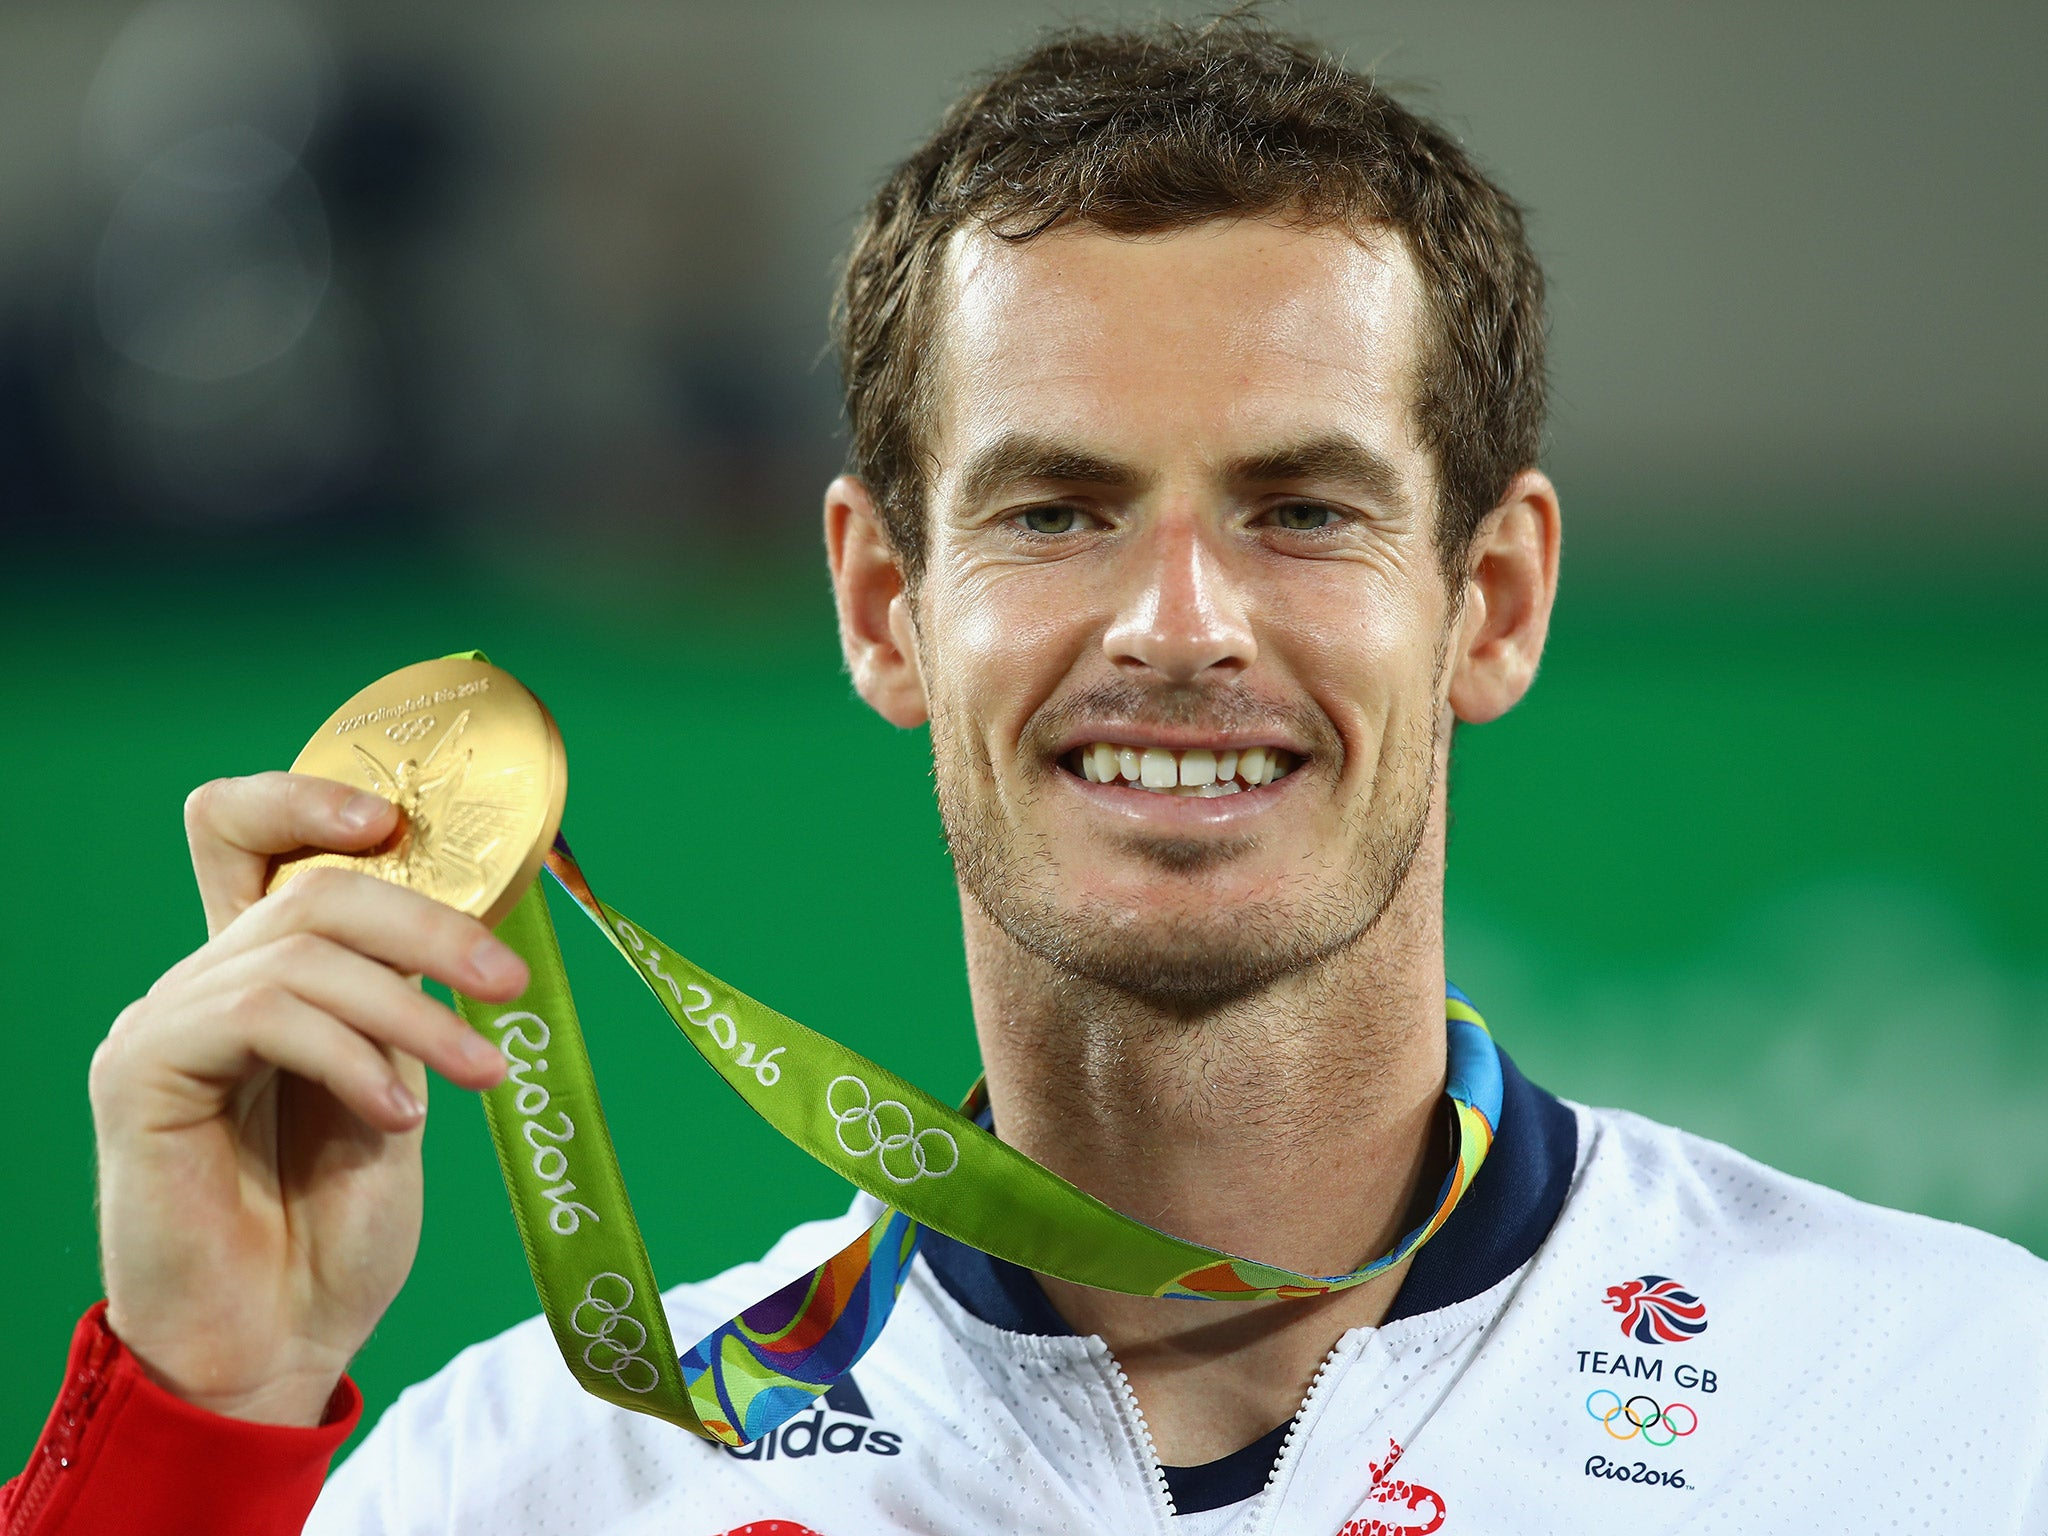 Rio 2016: Andy Murray becomes first male player to win two Olympic tennis  golds after beating Juan Martin del Porto | The Independent